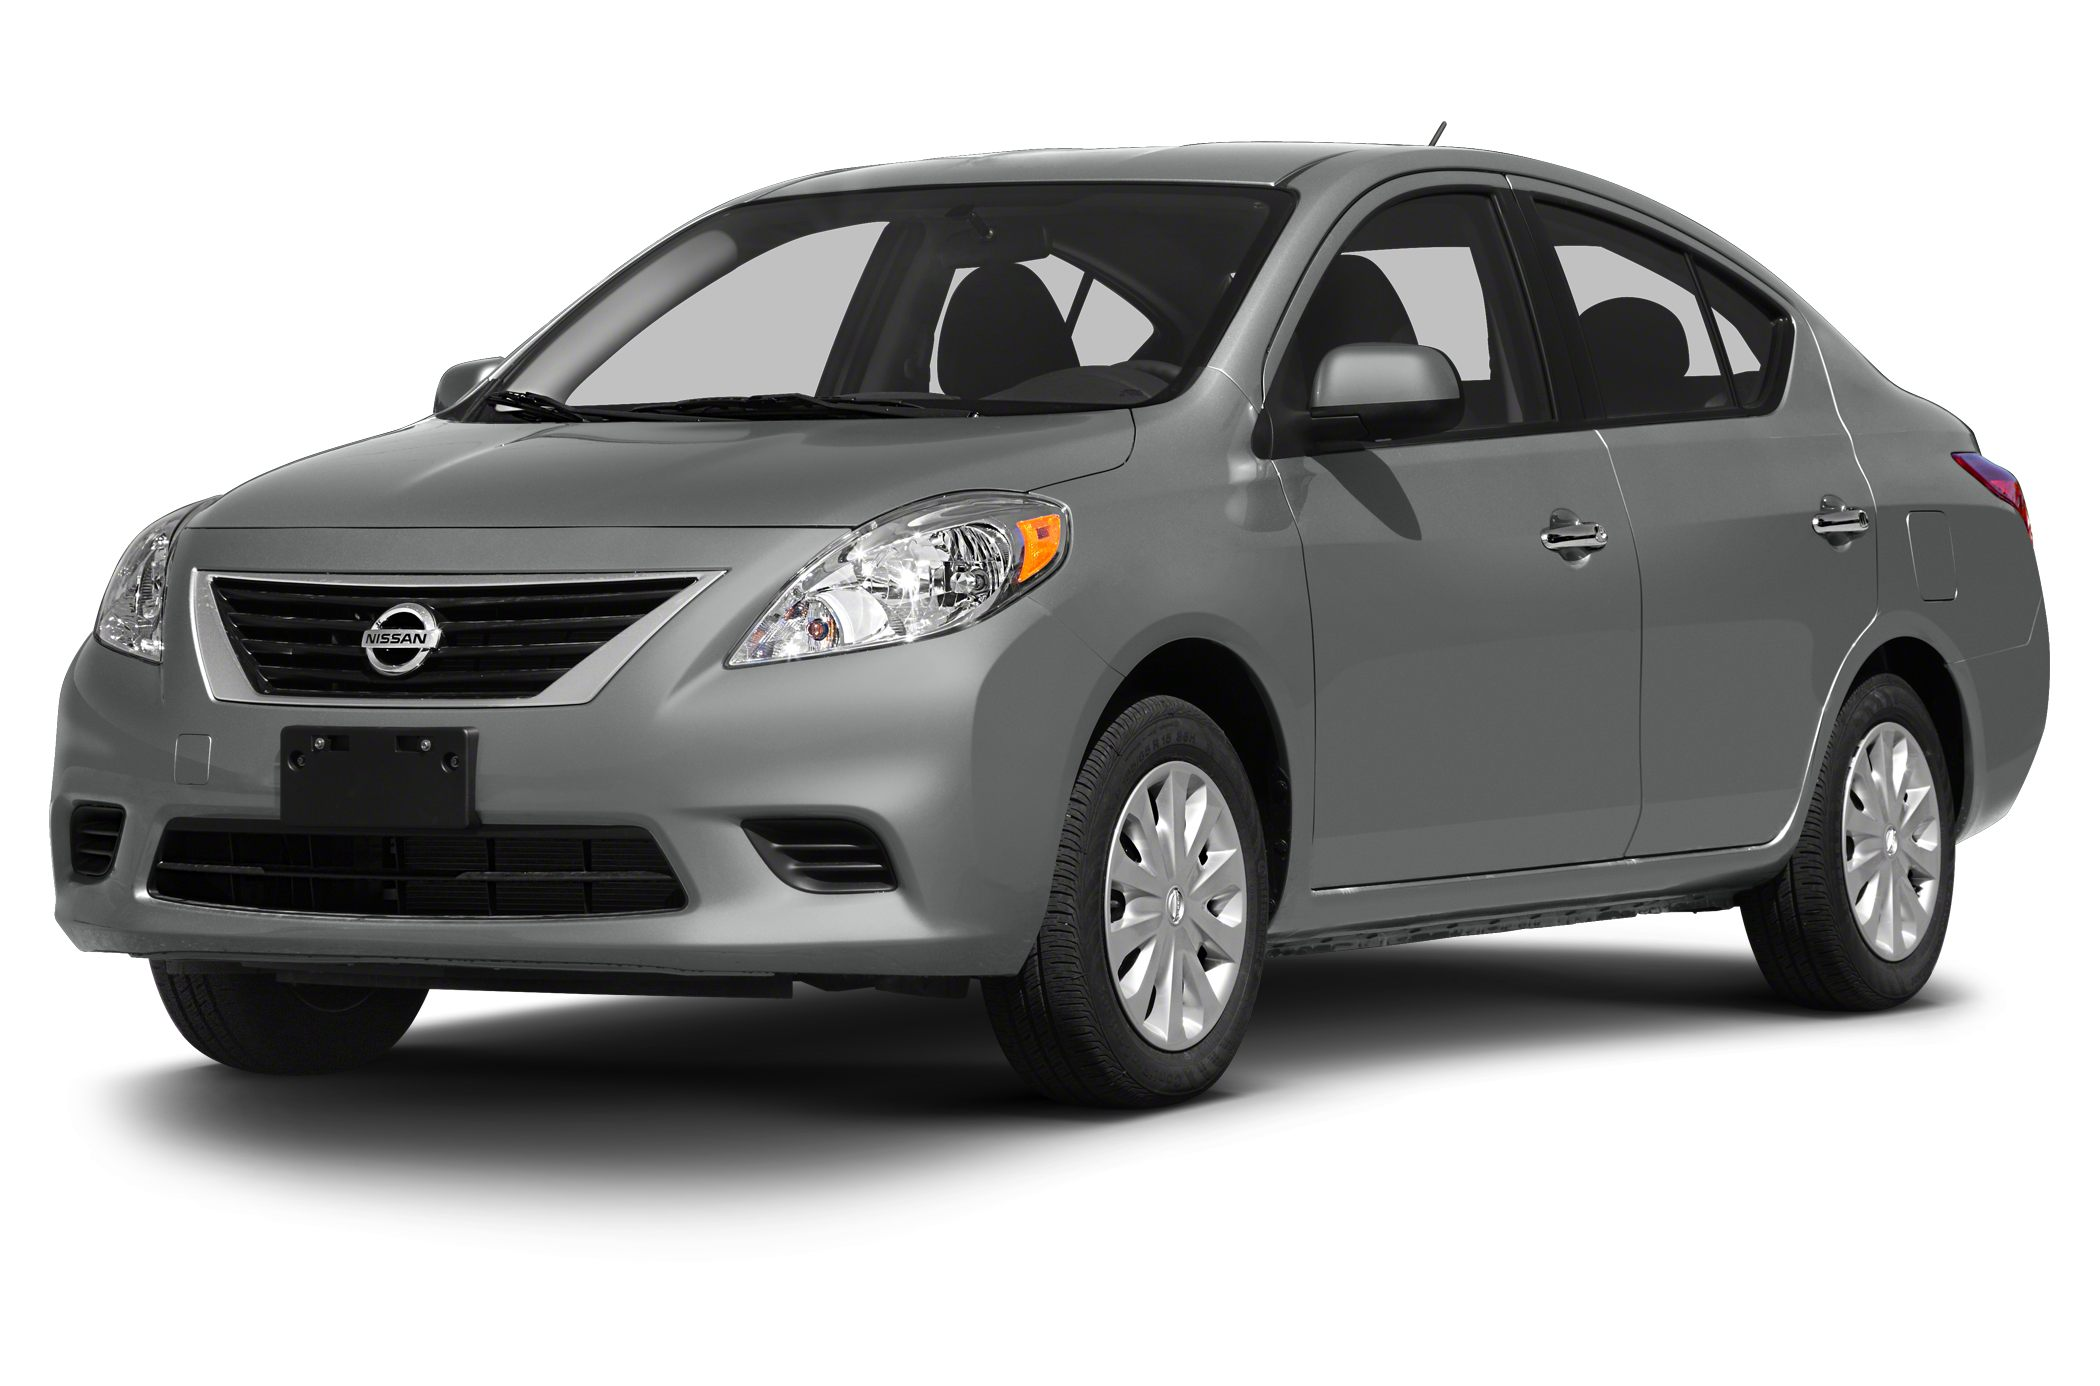 2013 Nissan Versa